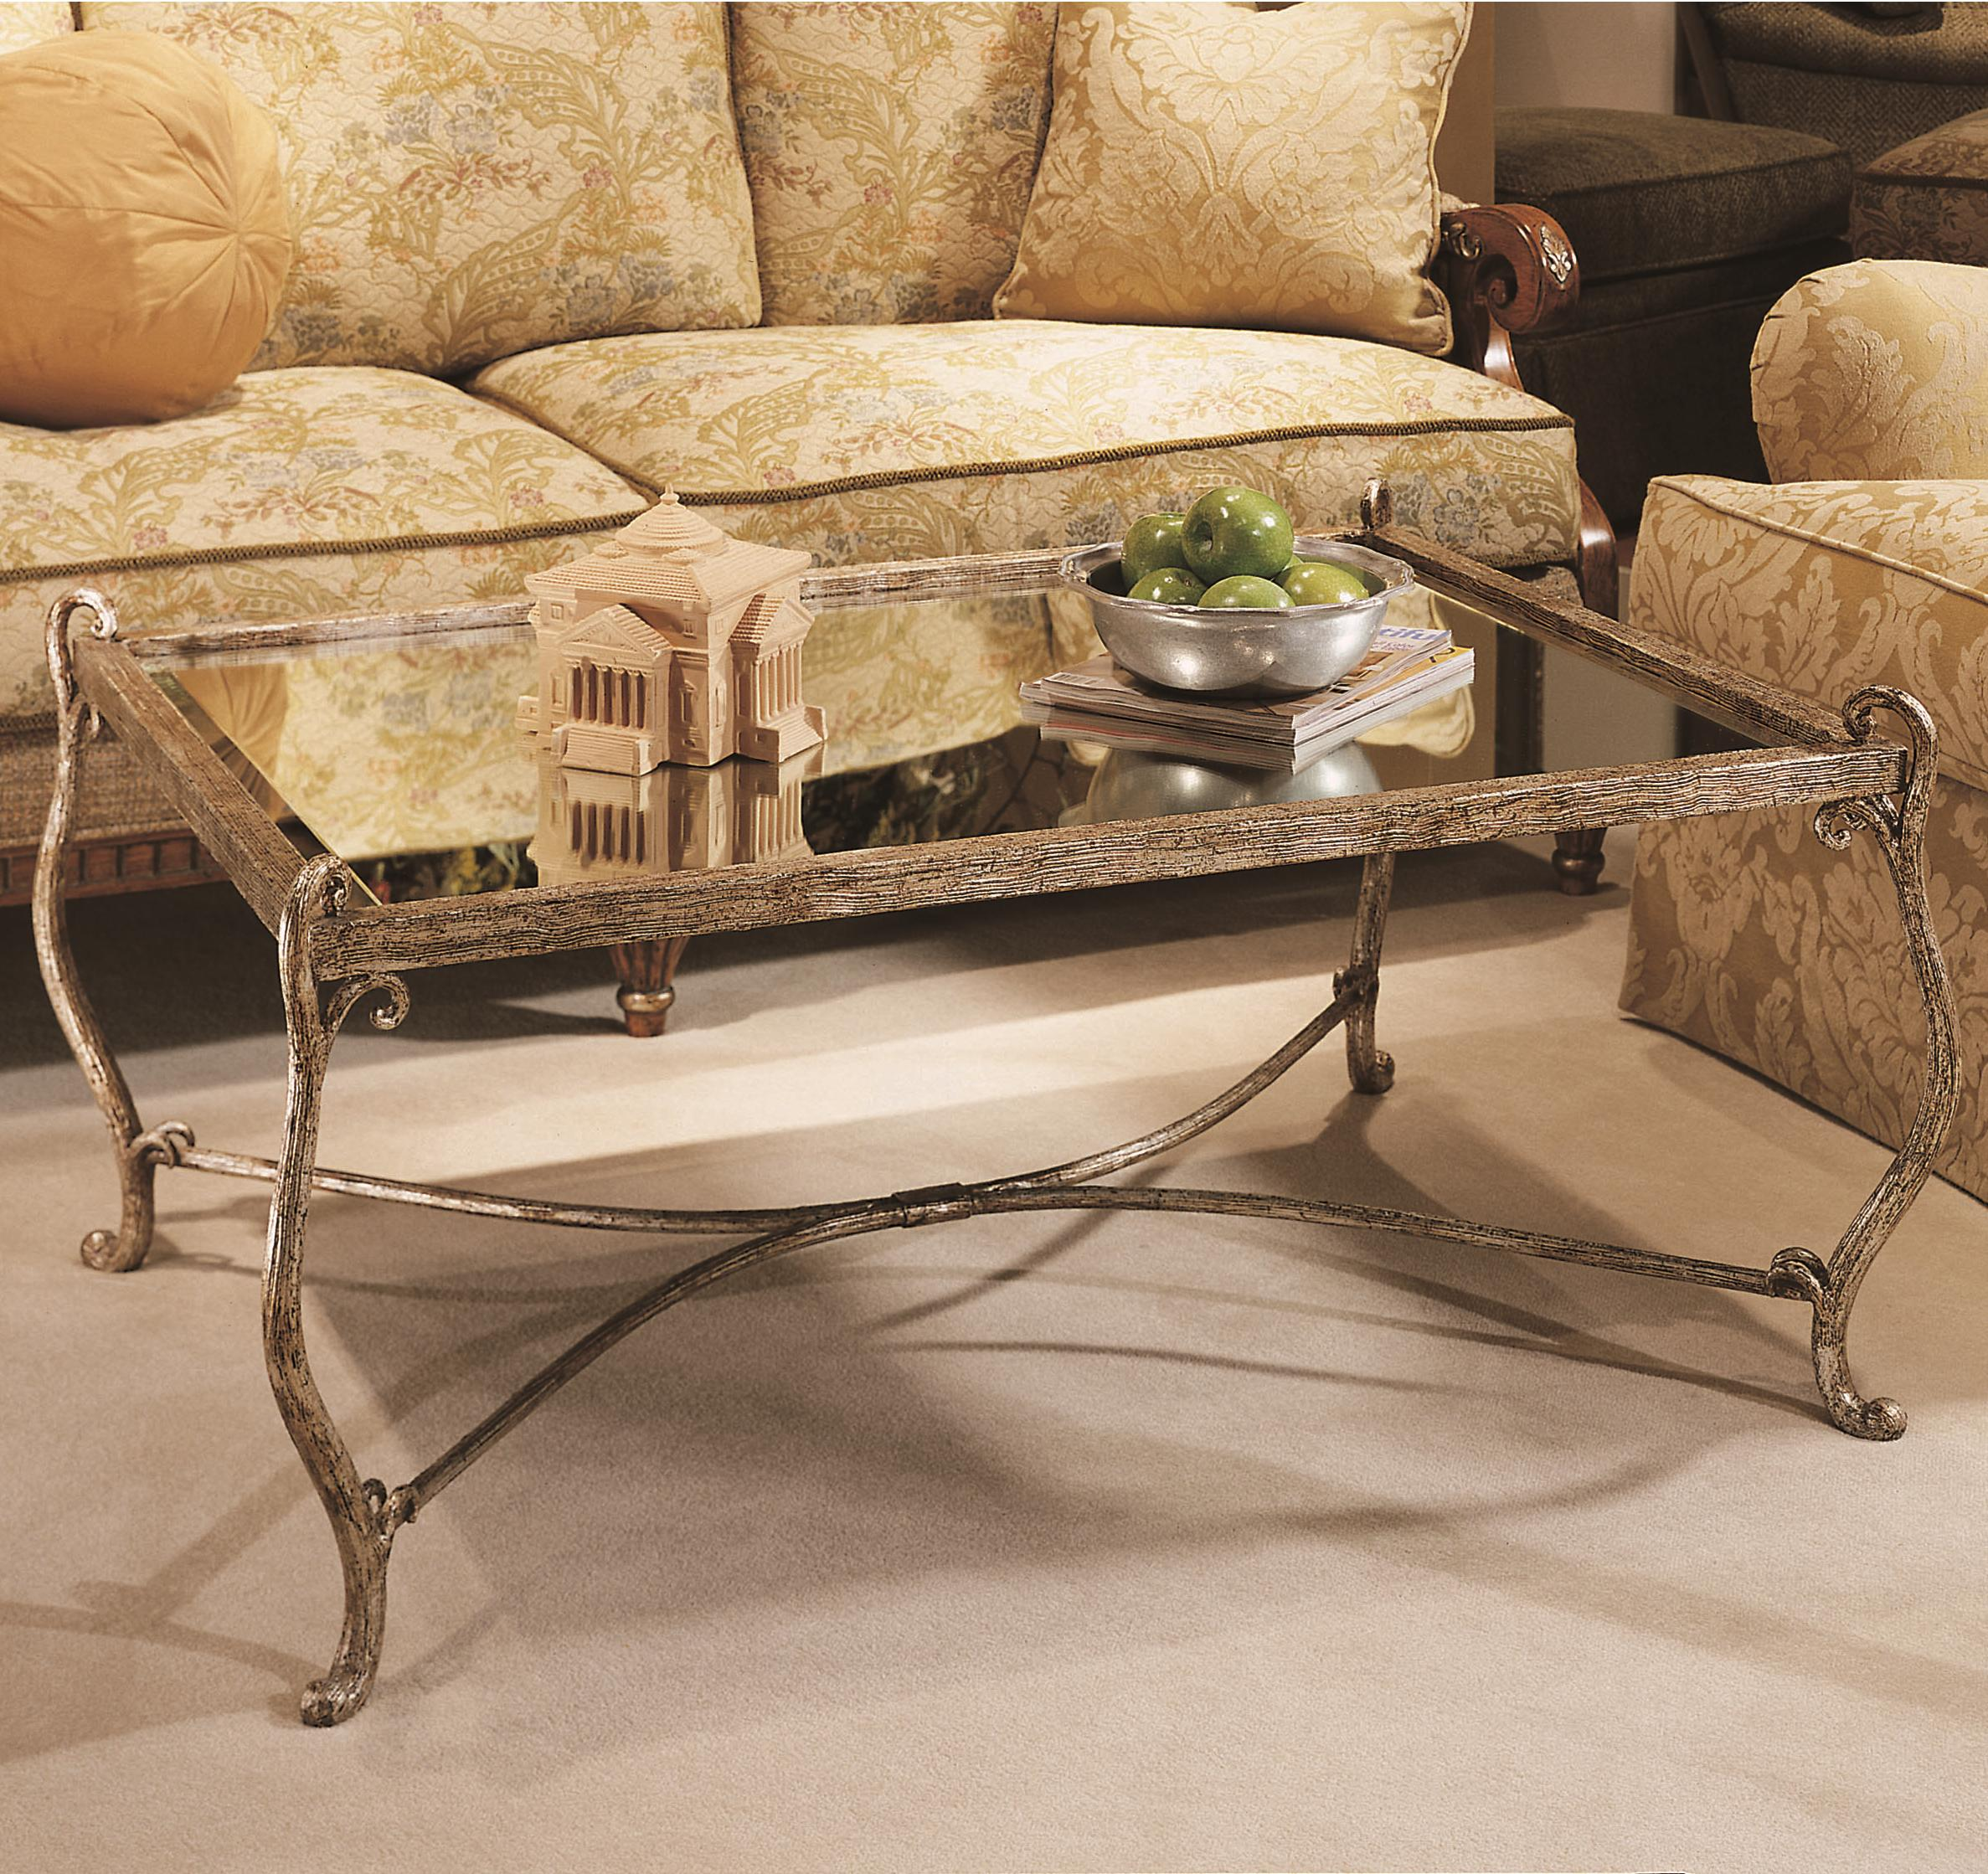 Grand Tour Cocktail Table by Century at Alison Craig Home Furnishings